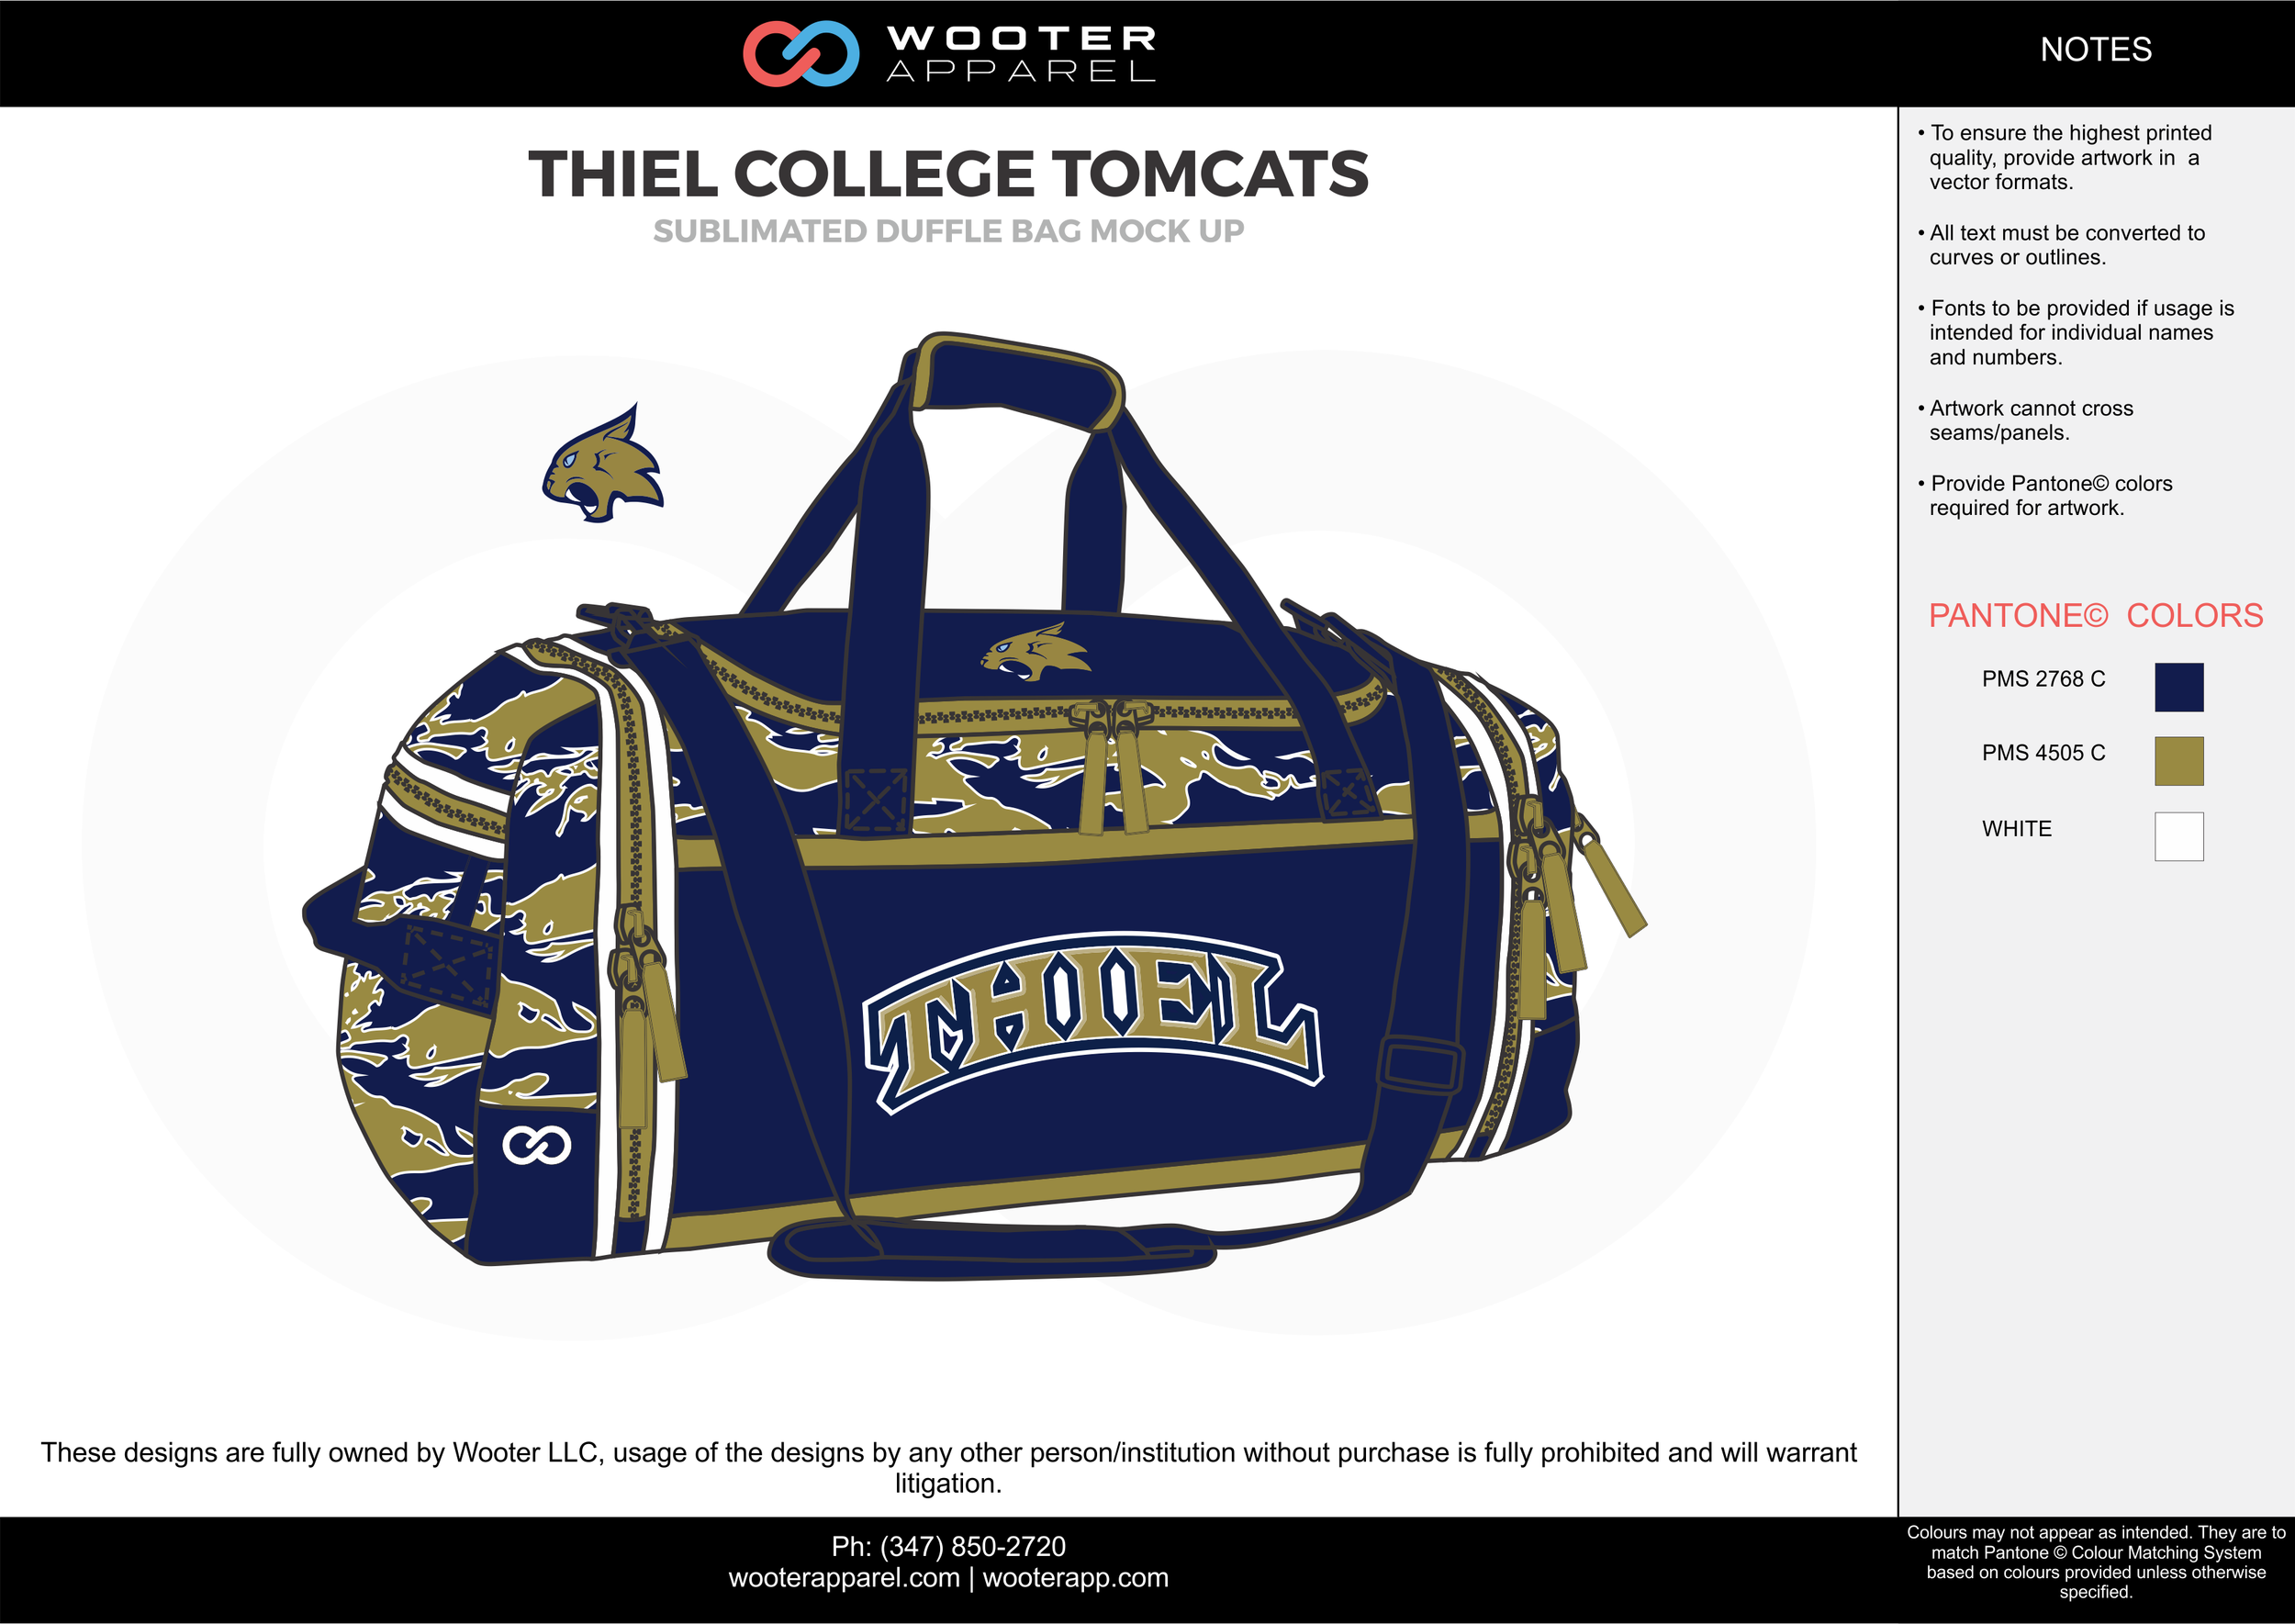 THIEL COLLEGE TOMCATS Blue Beige and White Football Duffle Bag